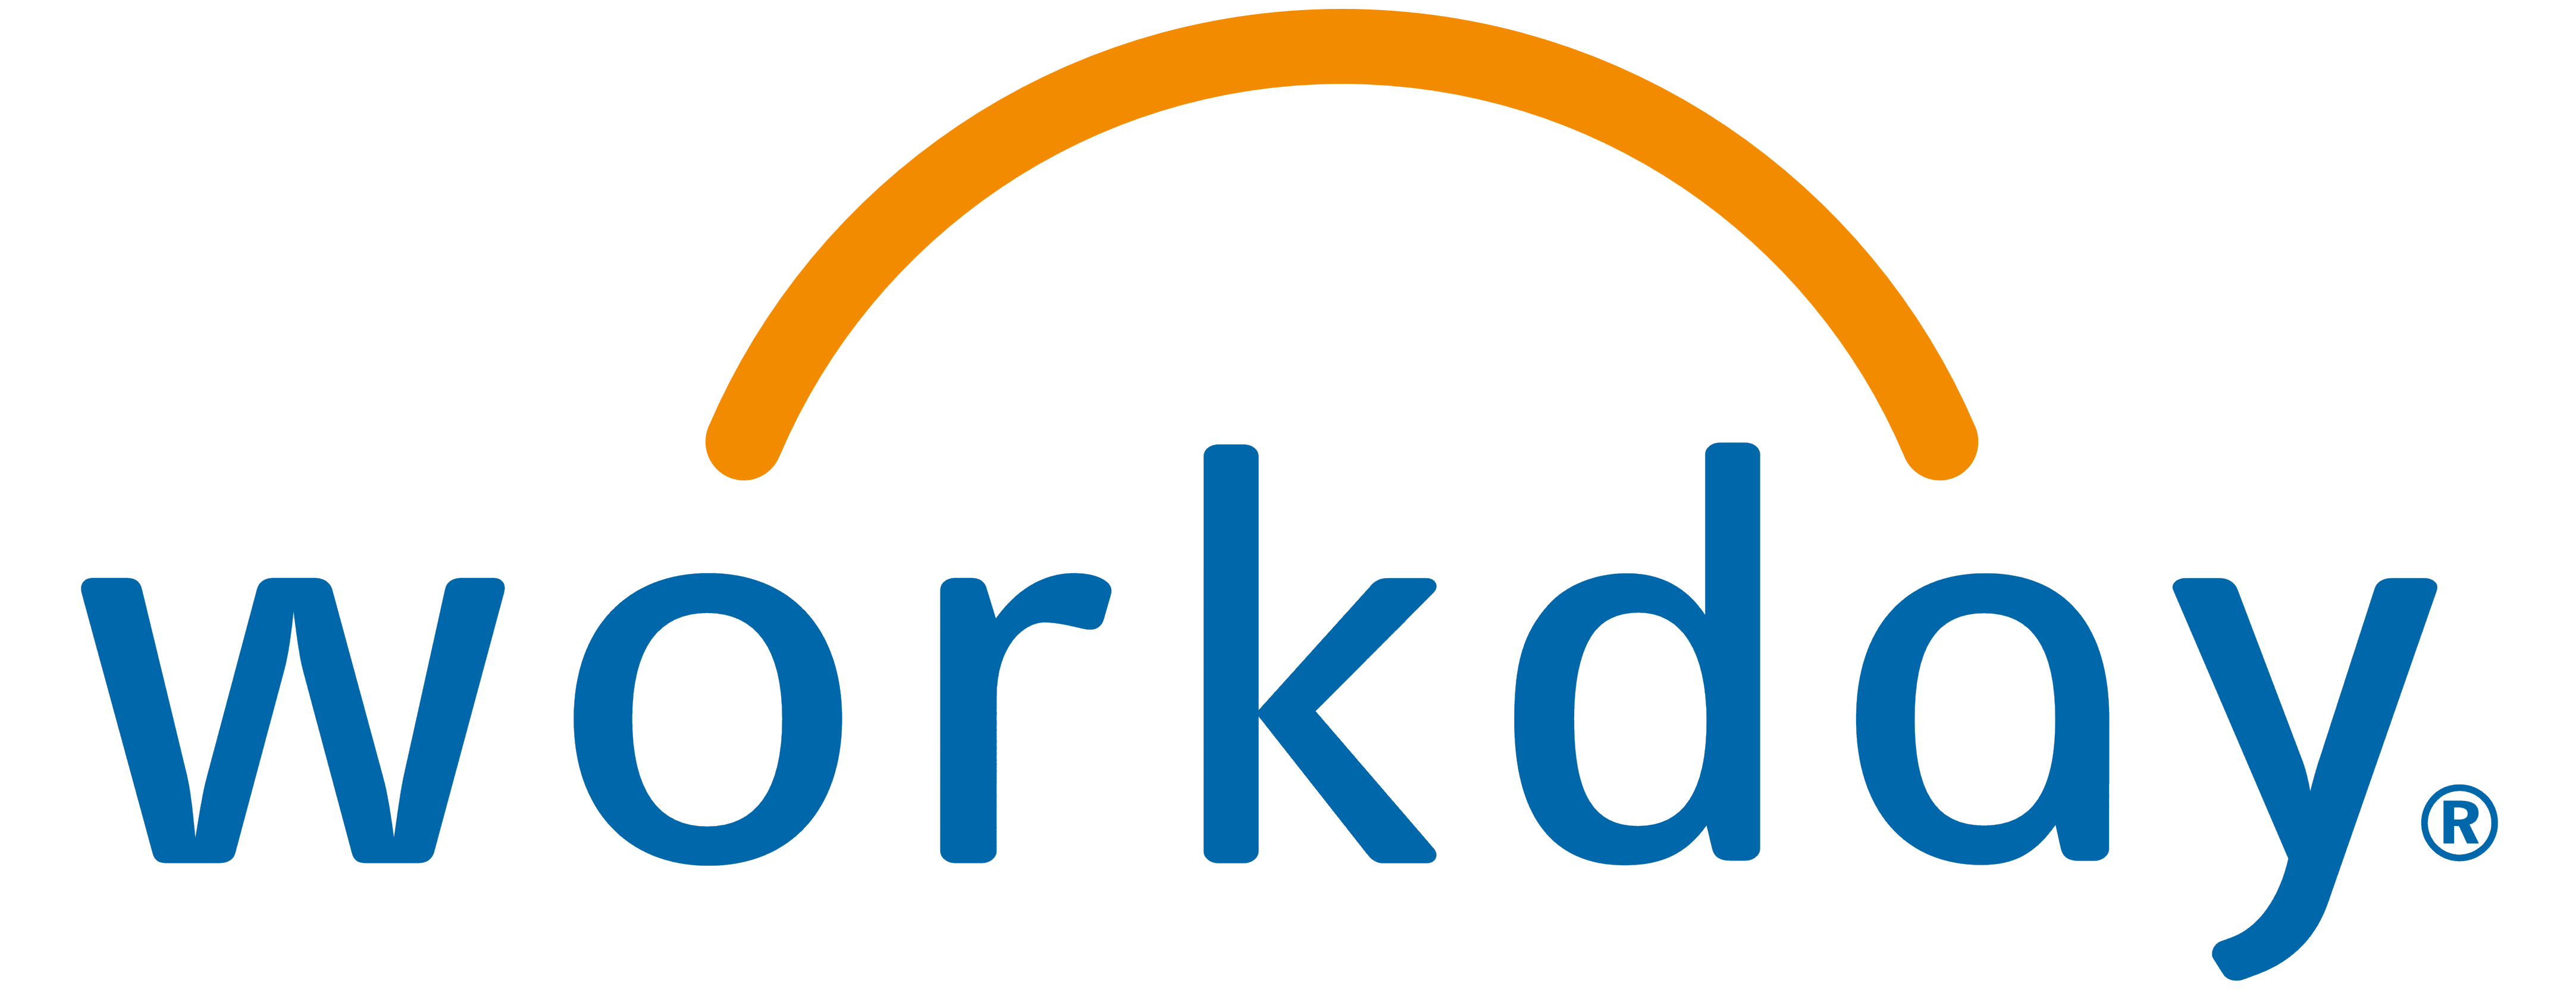 workday-logo-transparent